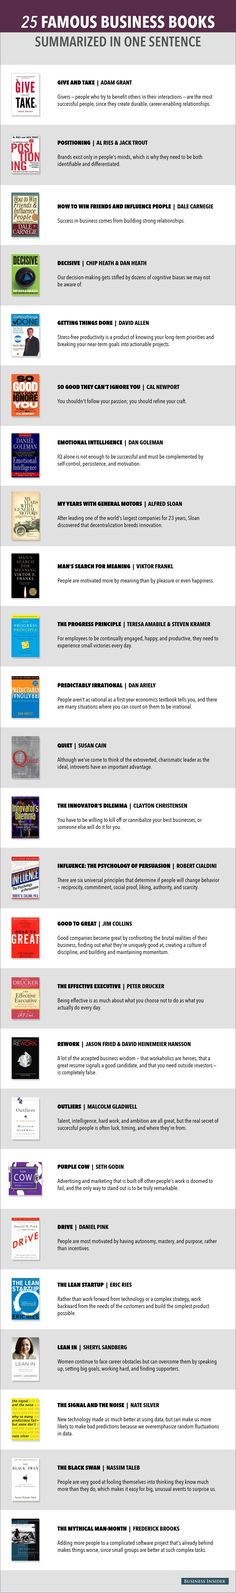 25 Popular Business Books Summarized In One Sentence Each